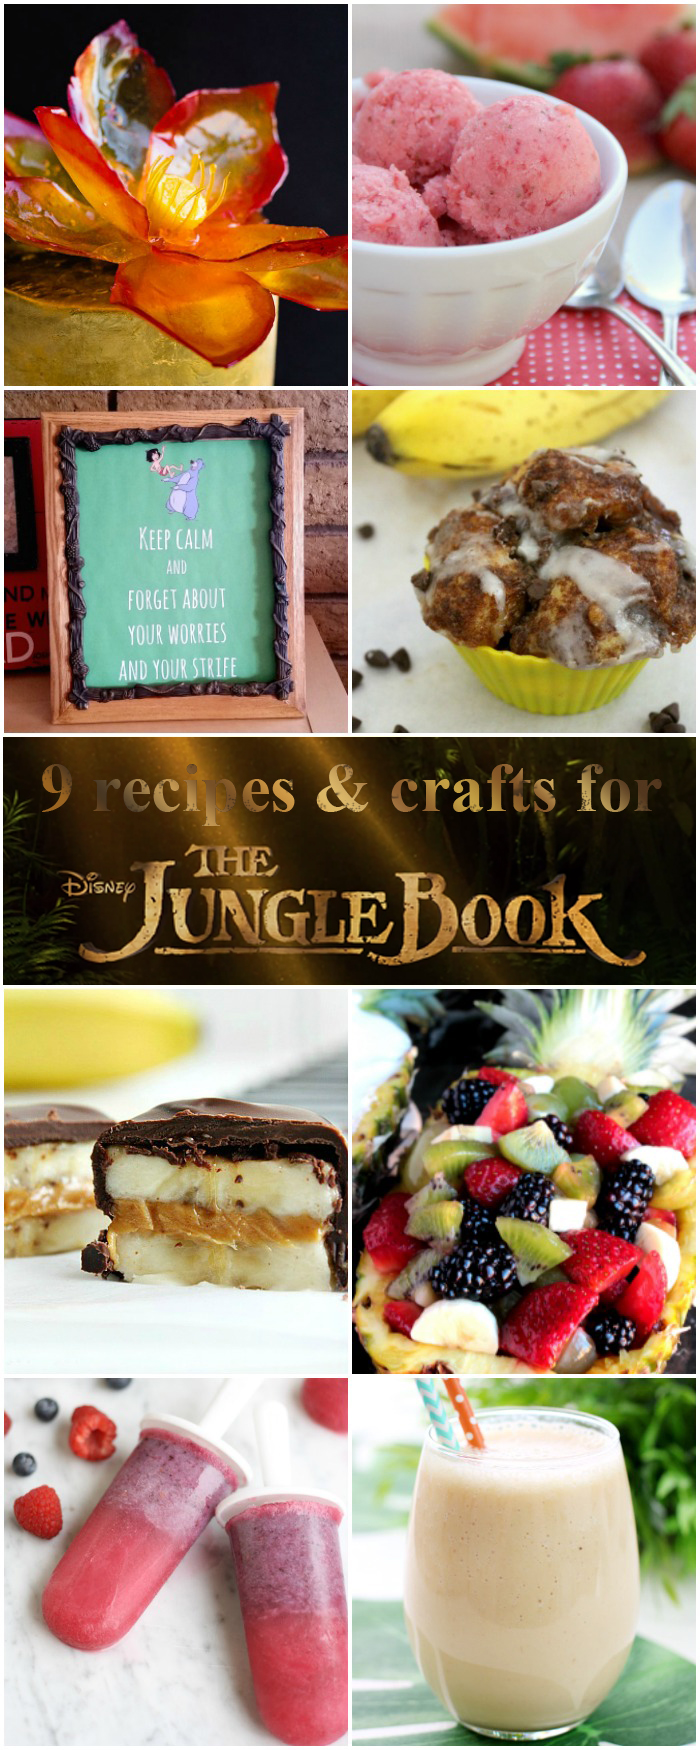 9 amazing recipes, printables and craft projects to go along with Disneys The Jungle Book